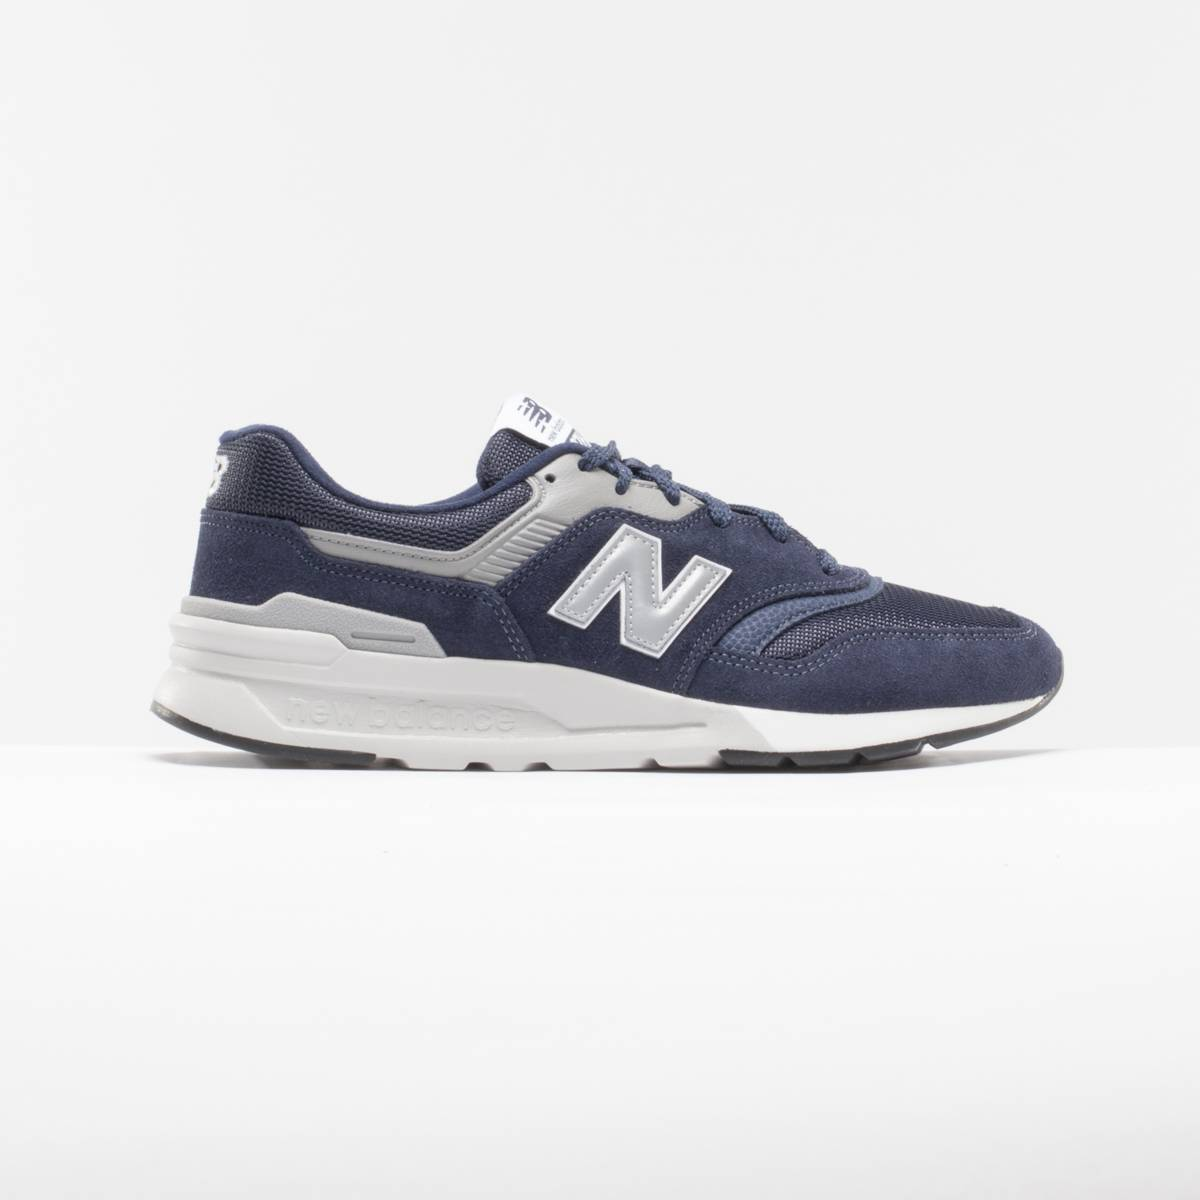 New Balance SNEAKERS 997H WC CM997 NAVY-HCE-010